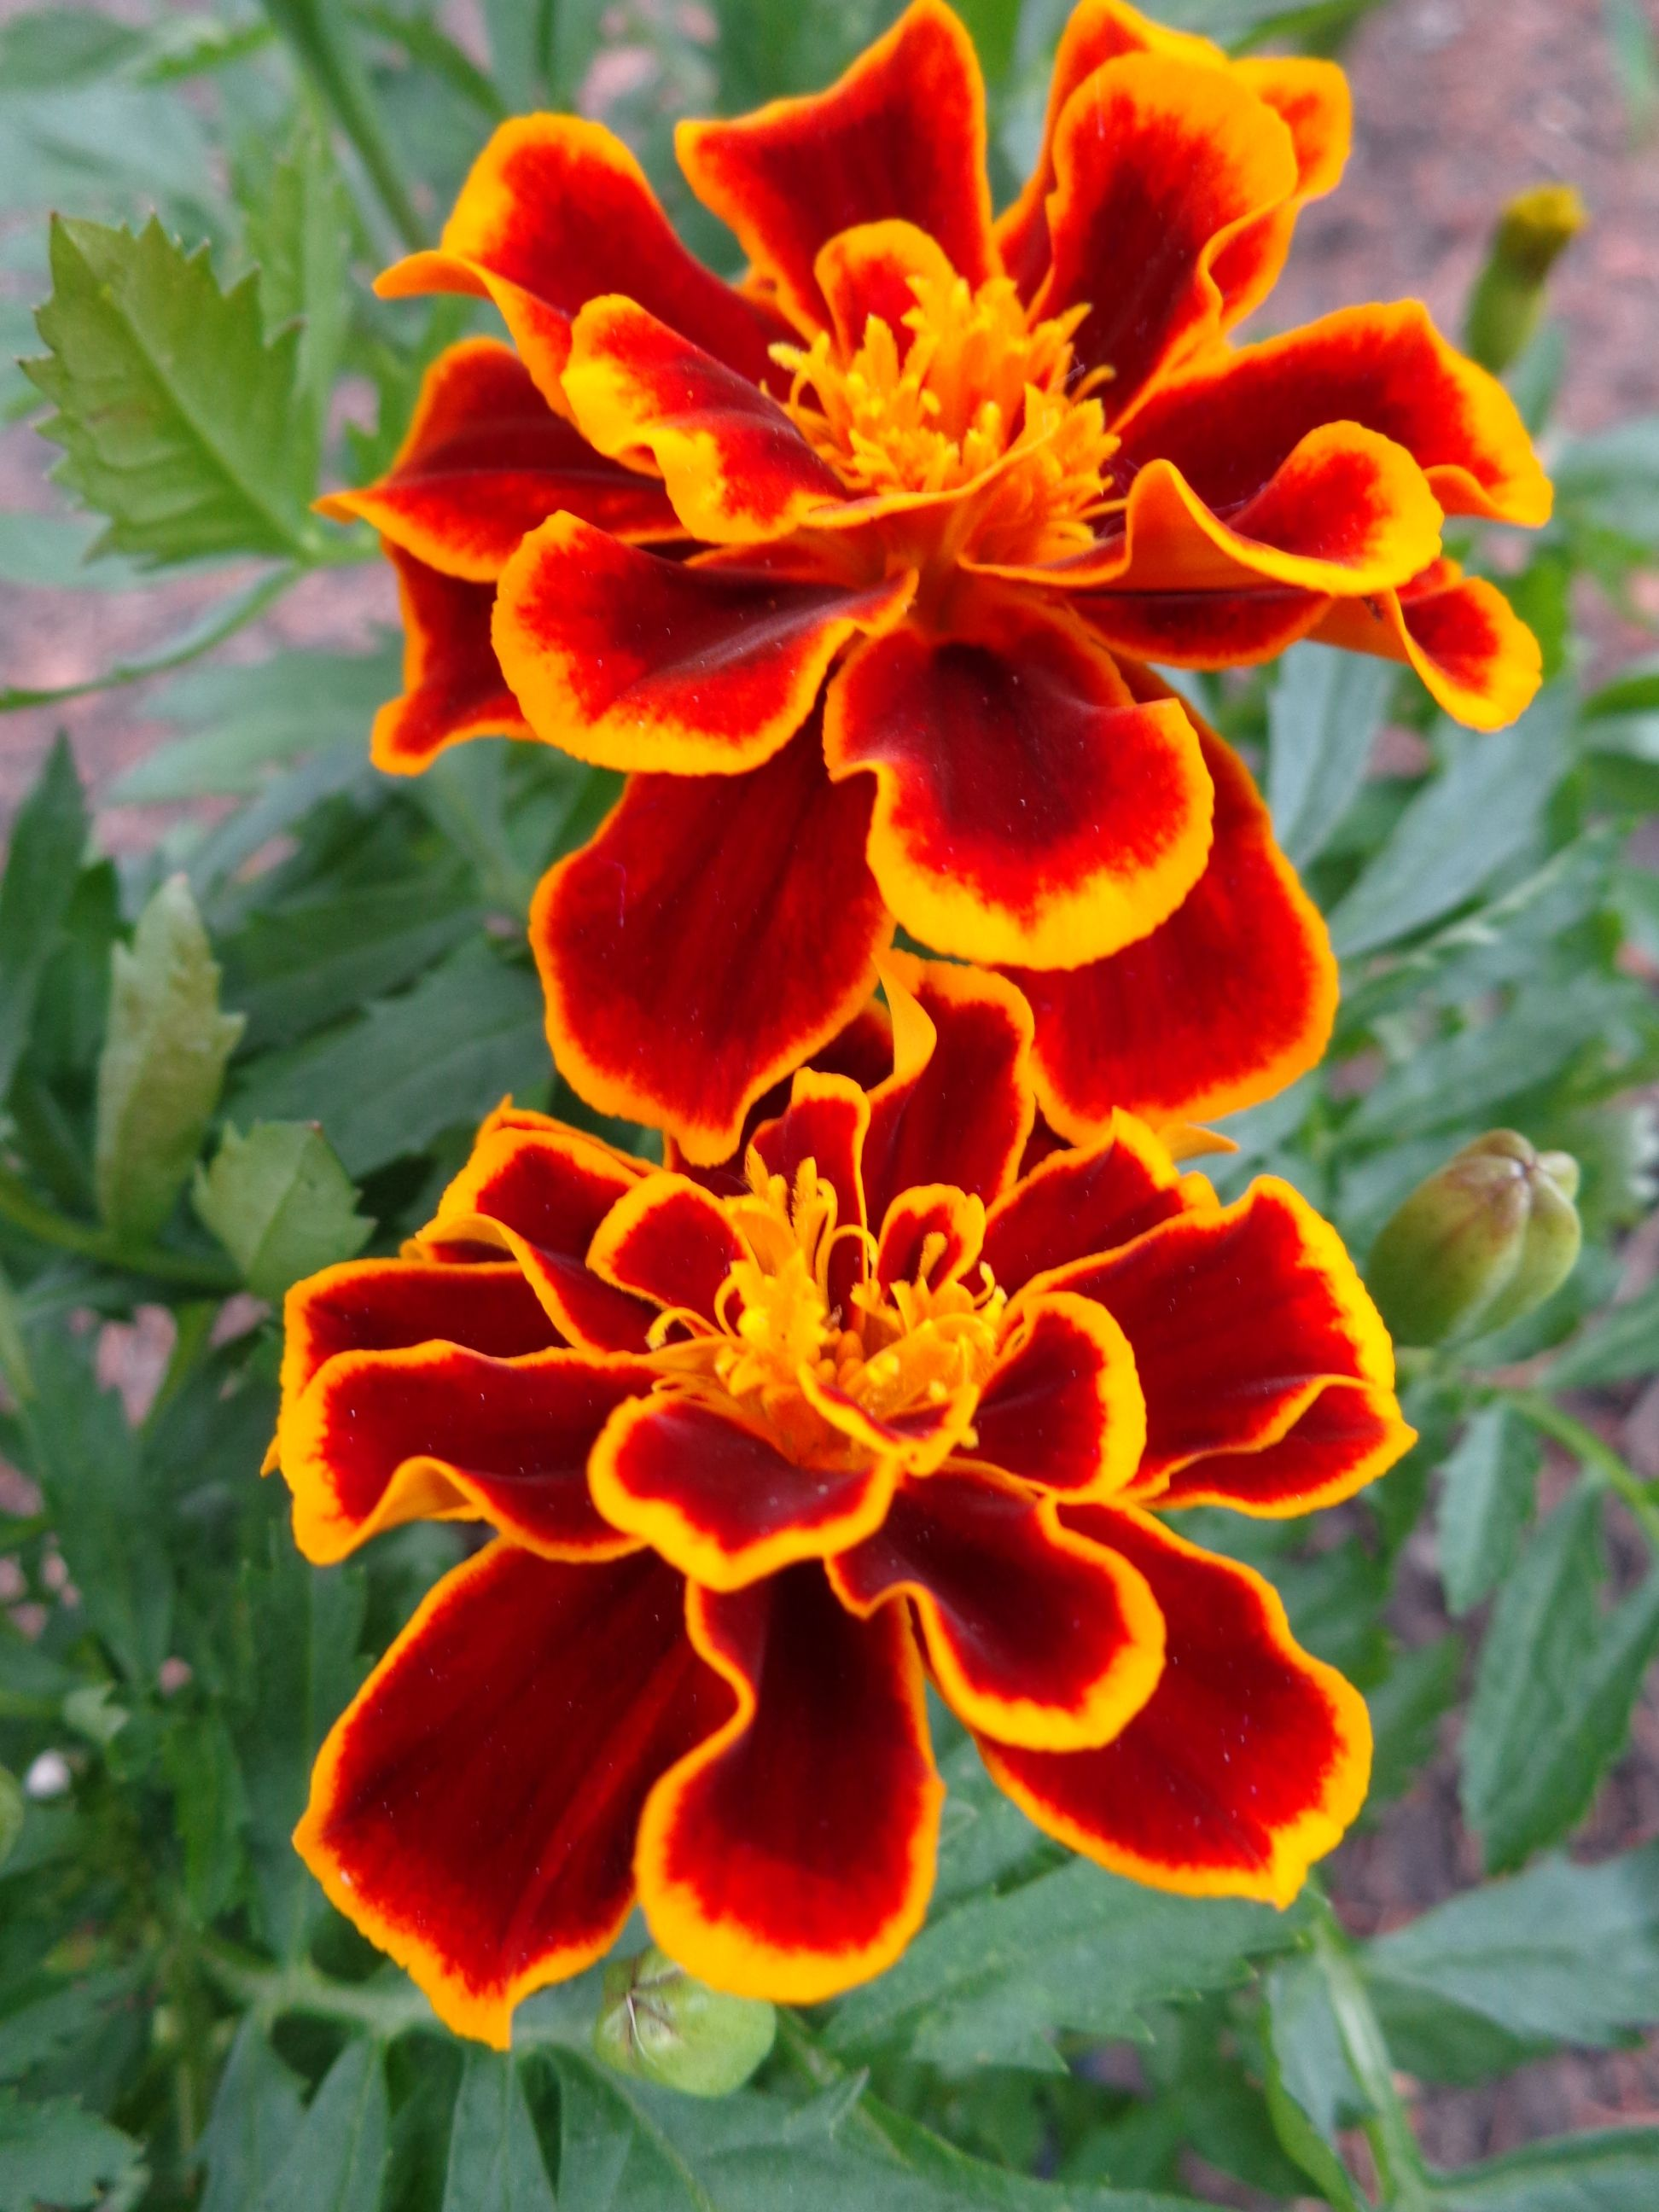 The Marigold Tarot Major Arcana The: I Like The Two-toned #color In This #Marigold #flower